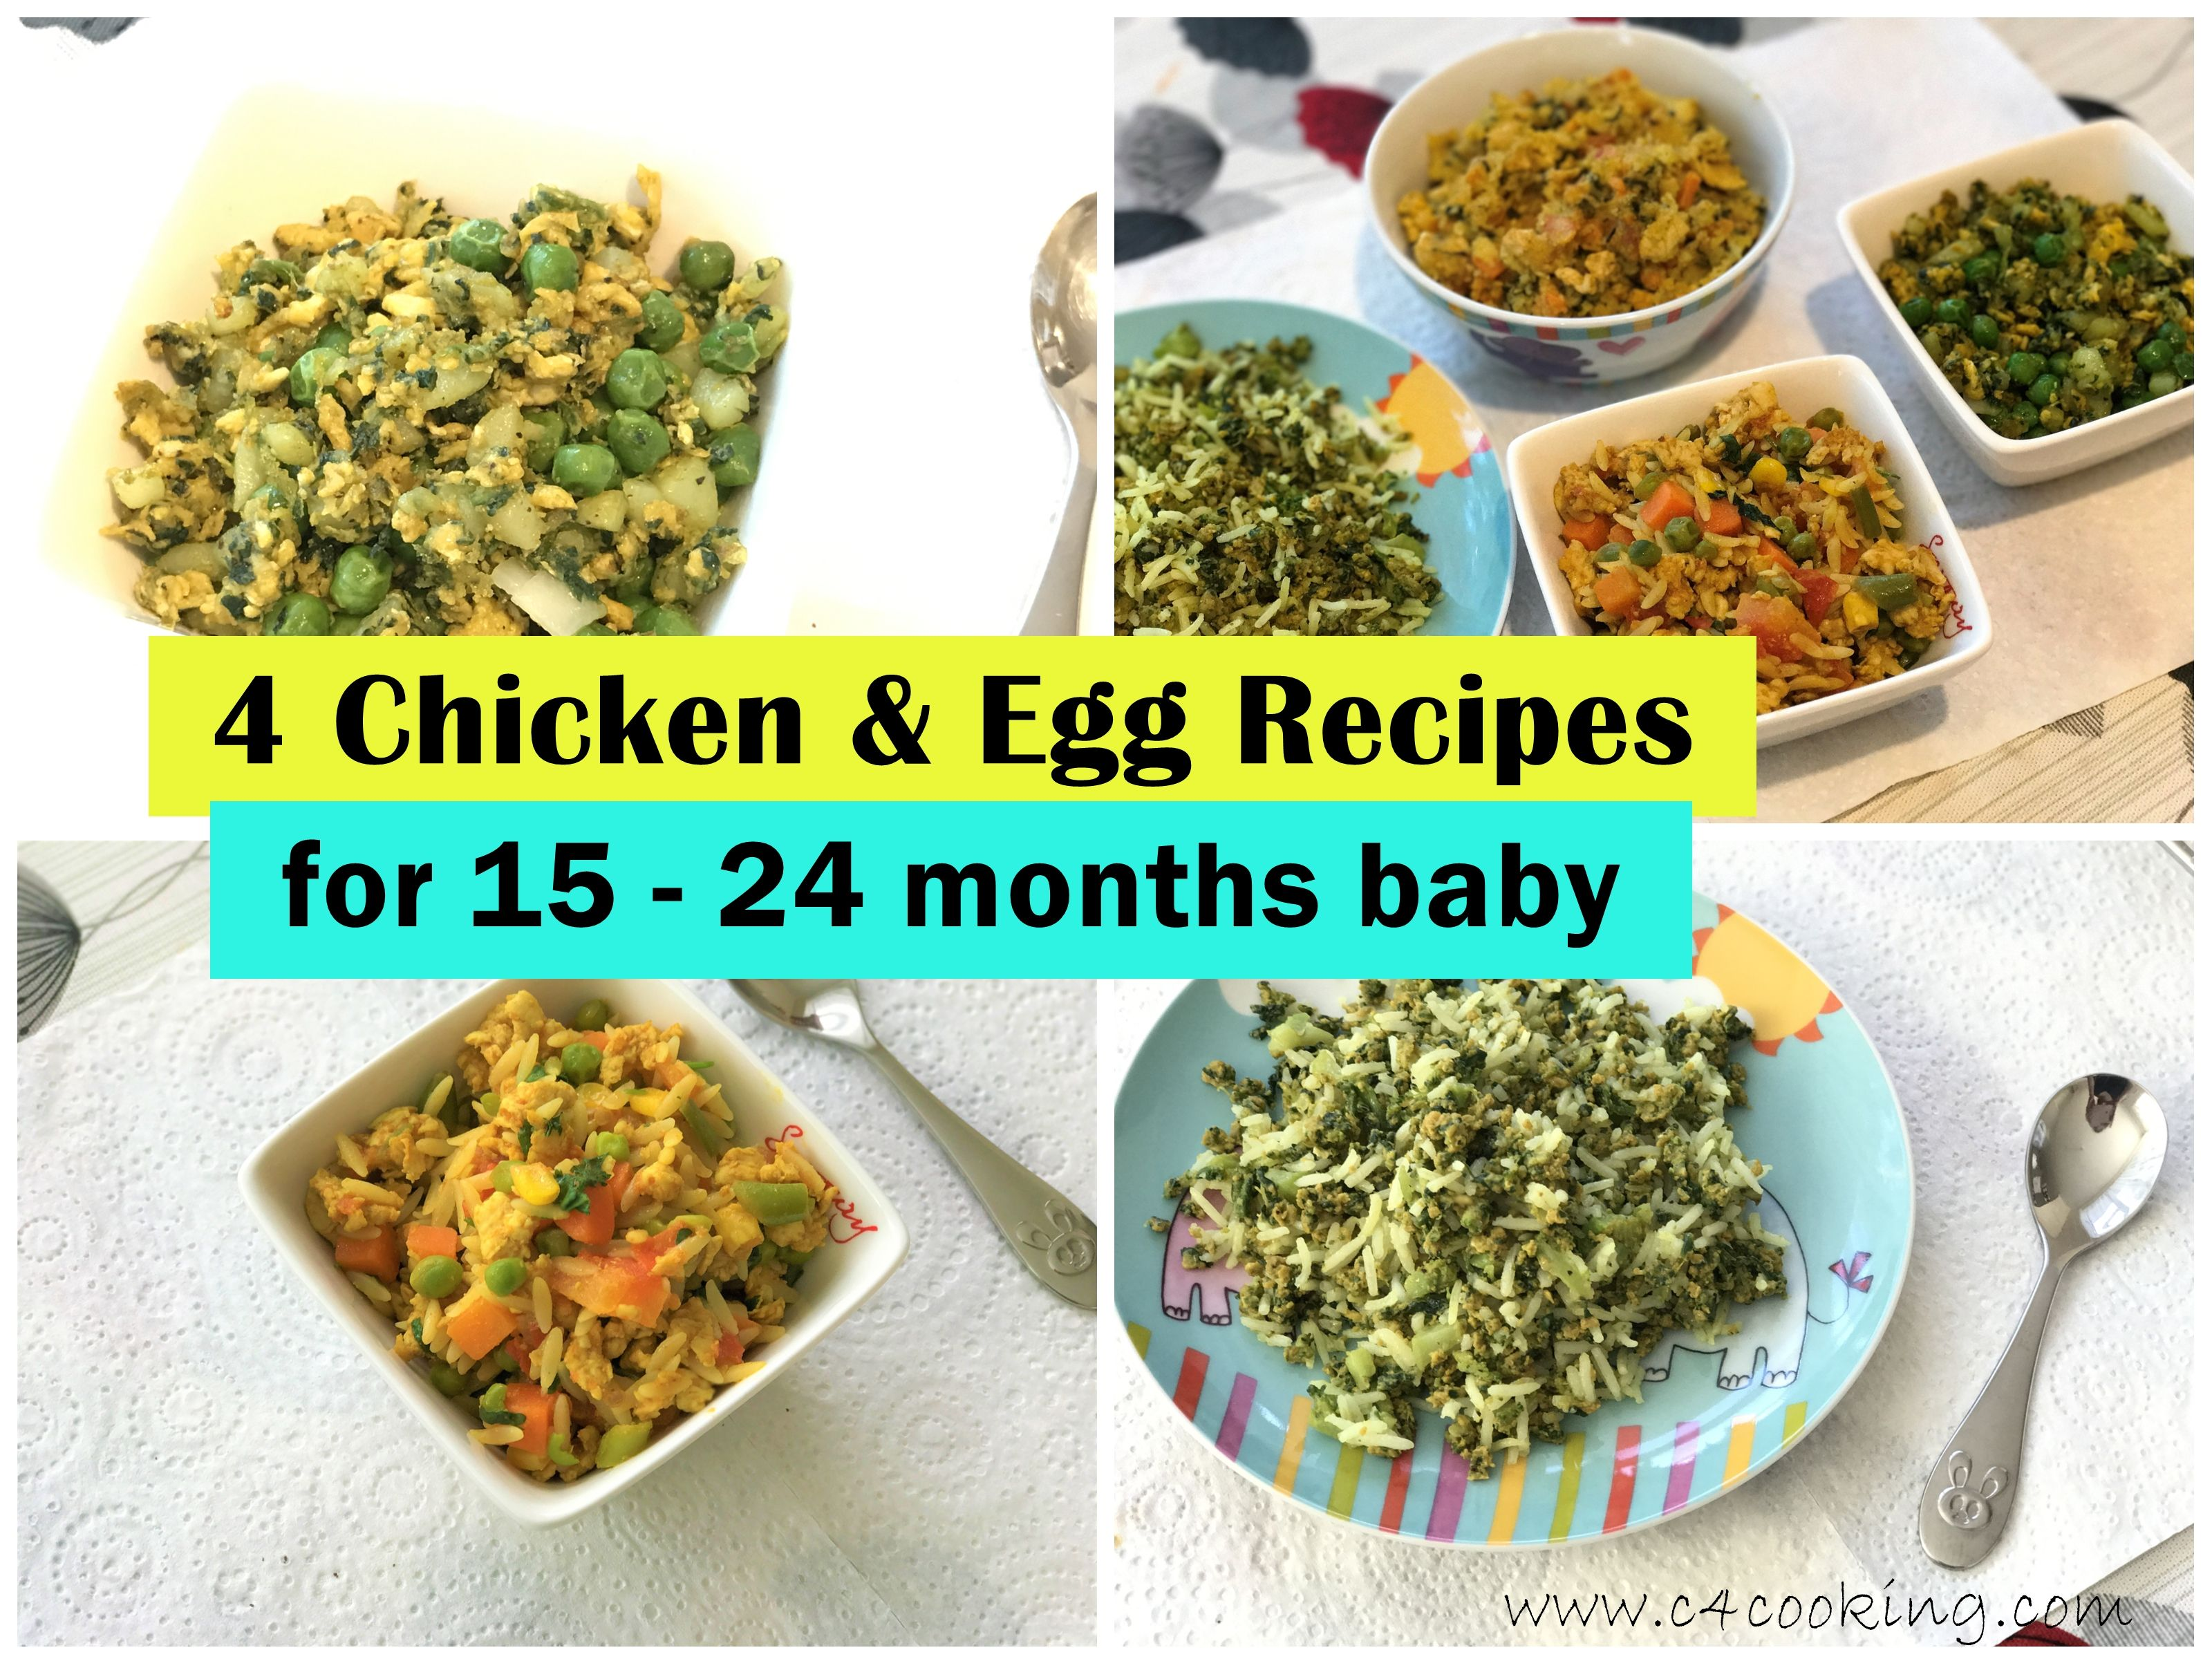 Breakfast cereal for 9 12 months baby c4cooking baby food chicken egg recipes for 15 24 months baby forumfinder Image collections